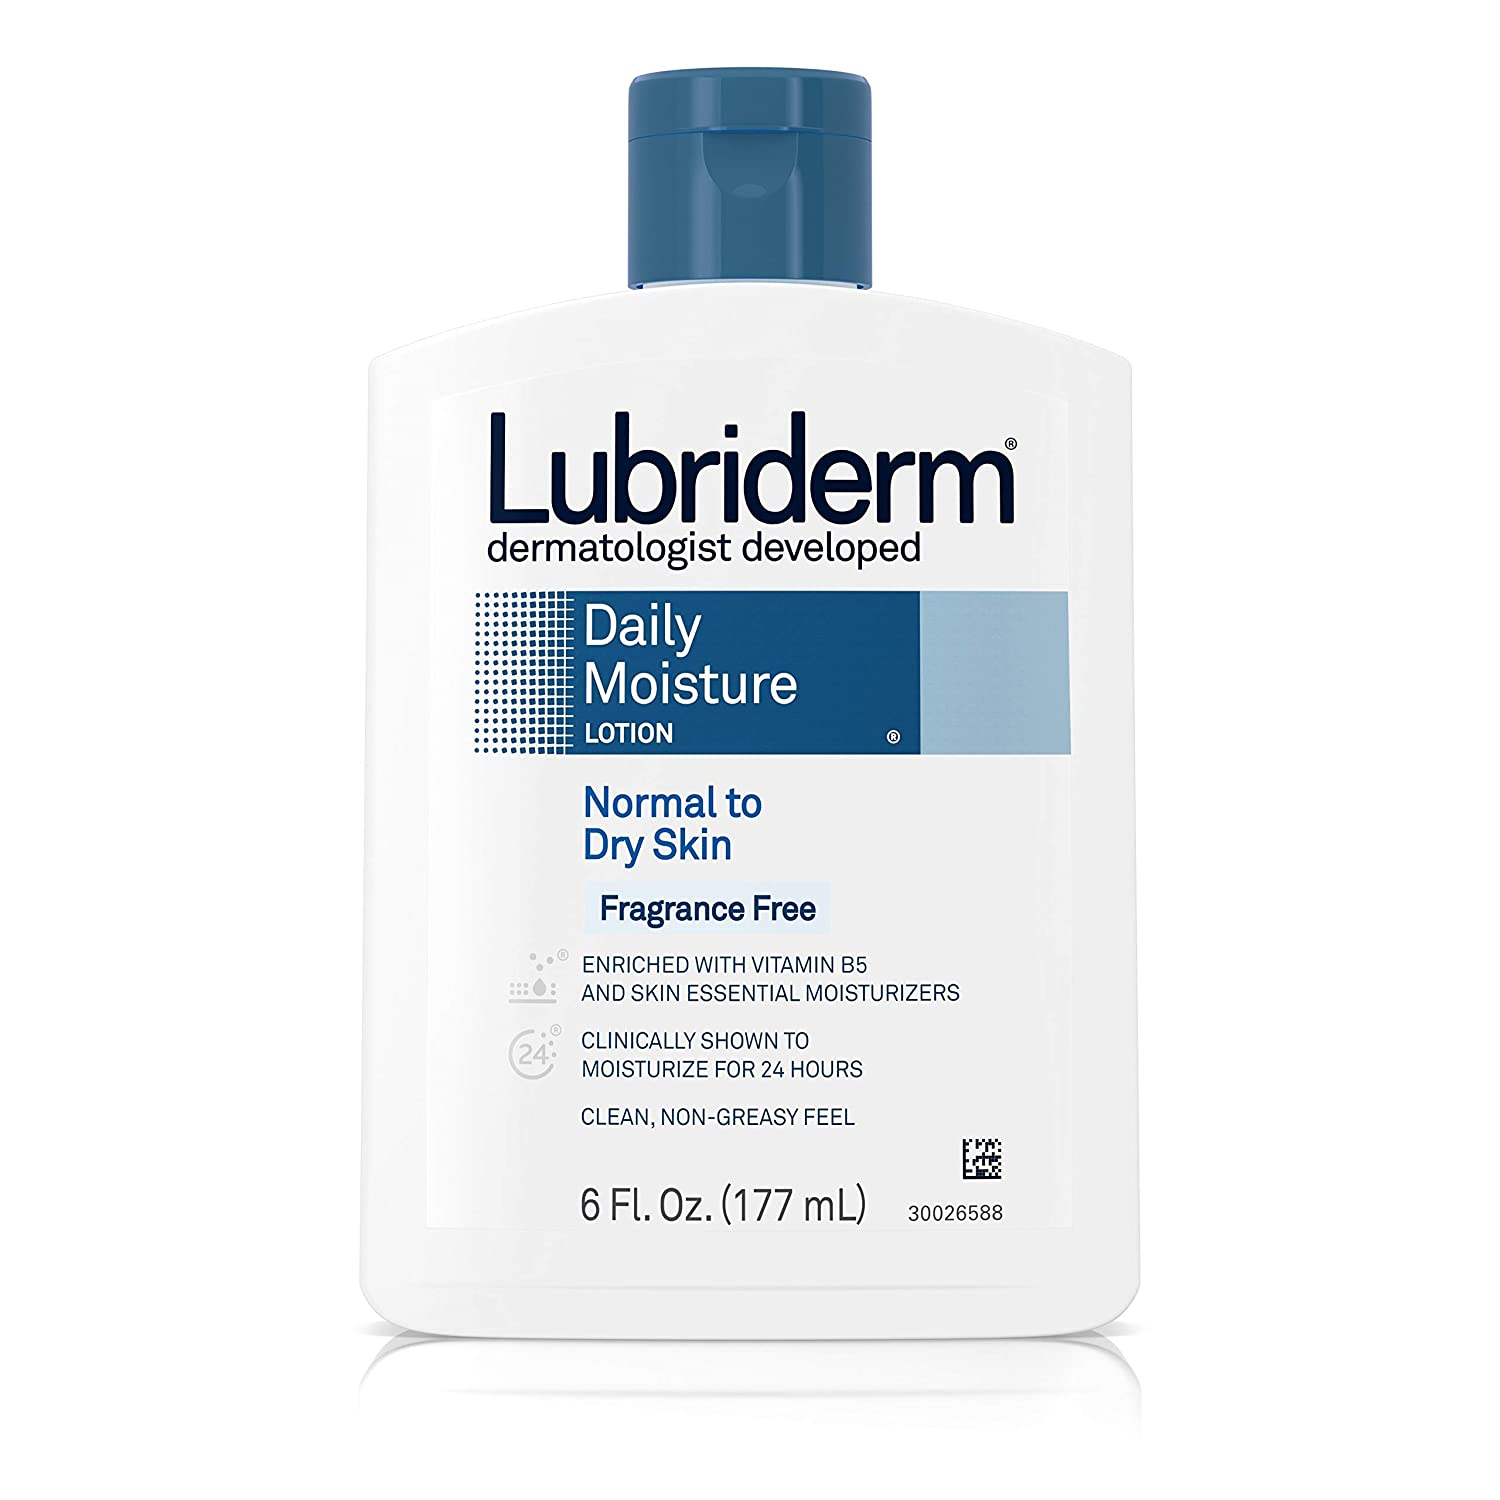 Lubriderm Lot Ff Size 6z Lubriderm Daily Moisture Lotion For Normal To Dry Skin Fragrance Free